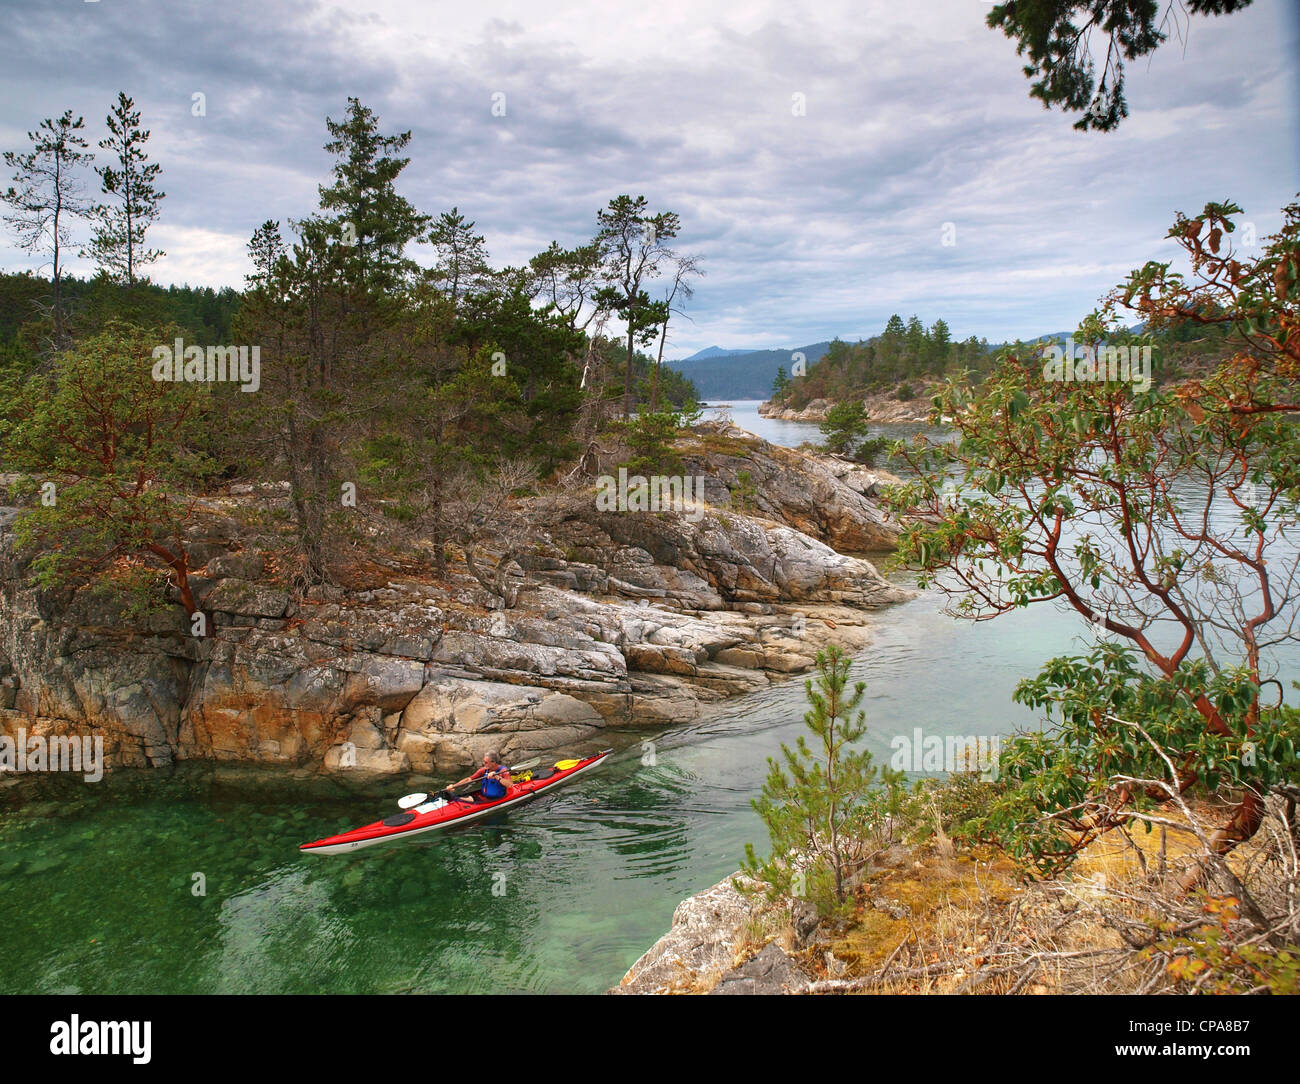 a sea kayaker paddling through The Curme Islands in Desolation Sound, British Columbia - Stock Image